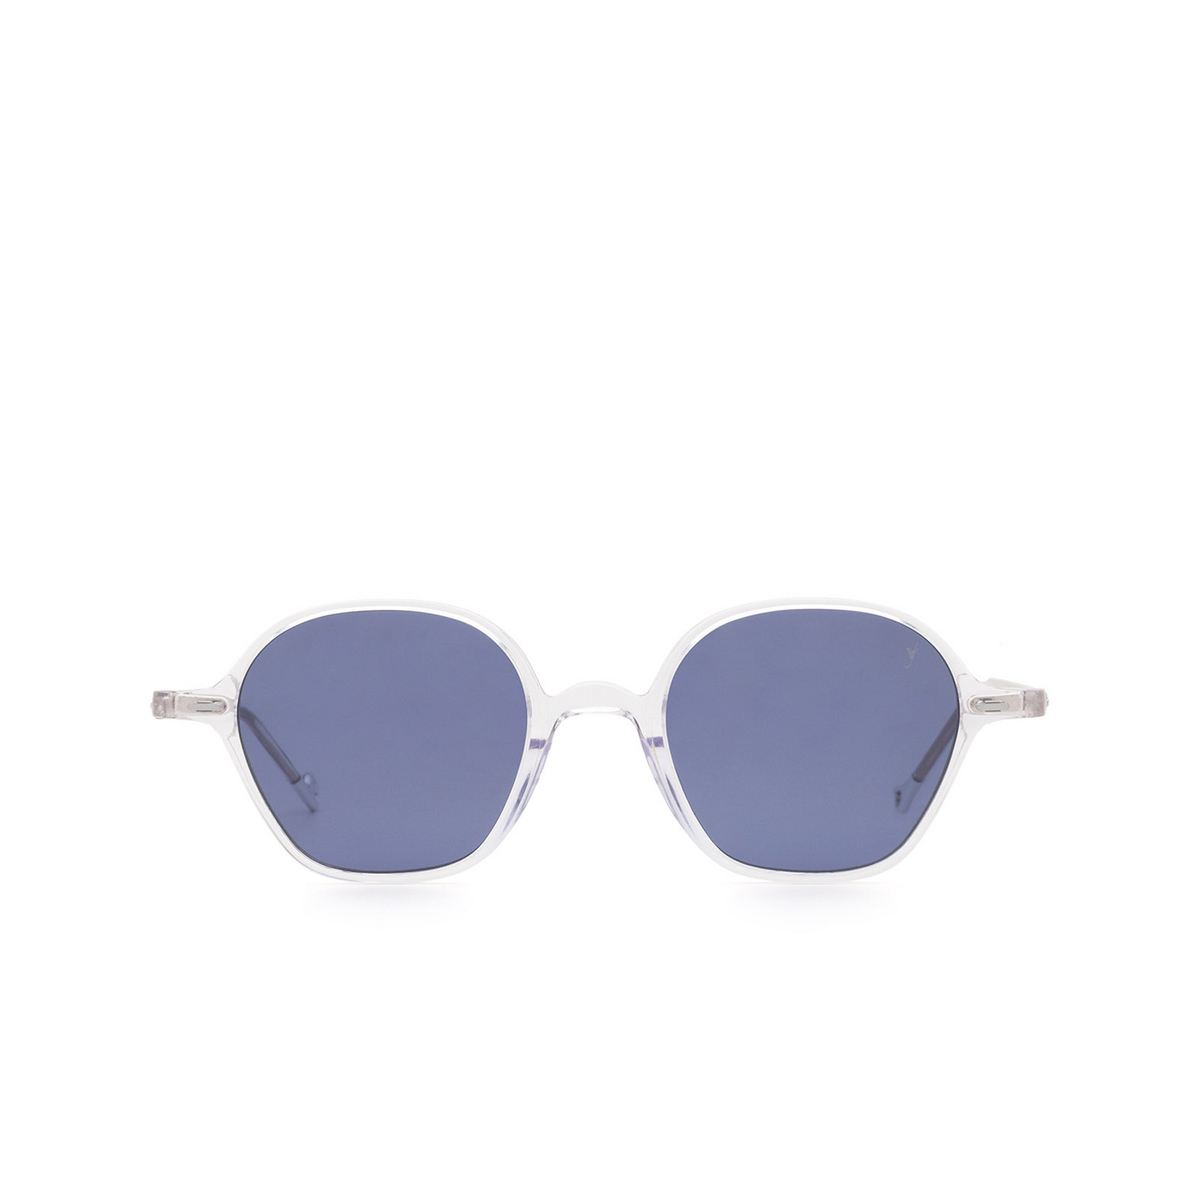 Eyepetizer® Irregular Sunglasses: Visconti color Crystal C.Y-39 - front view.